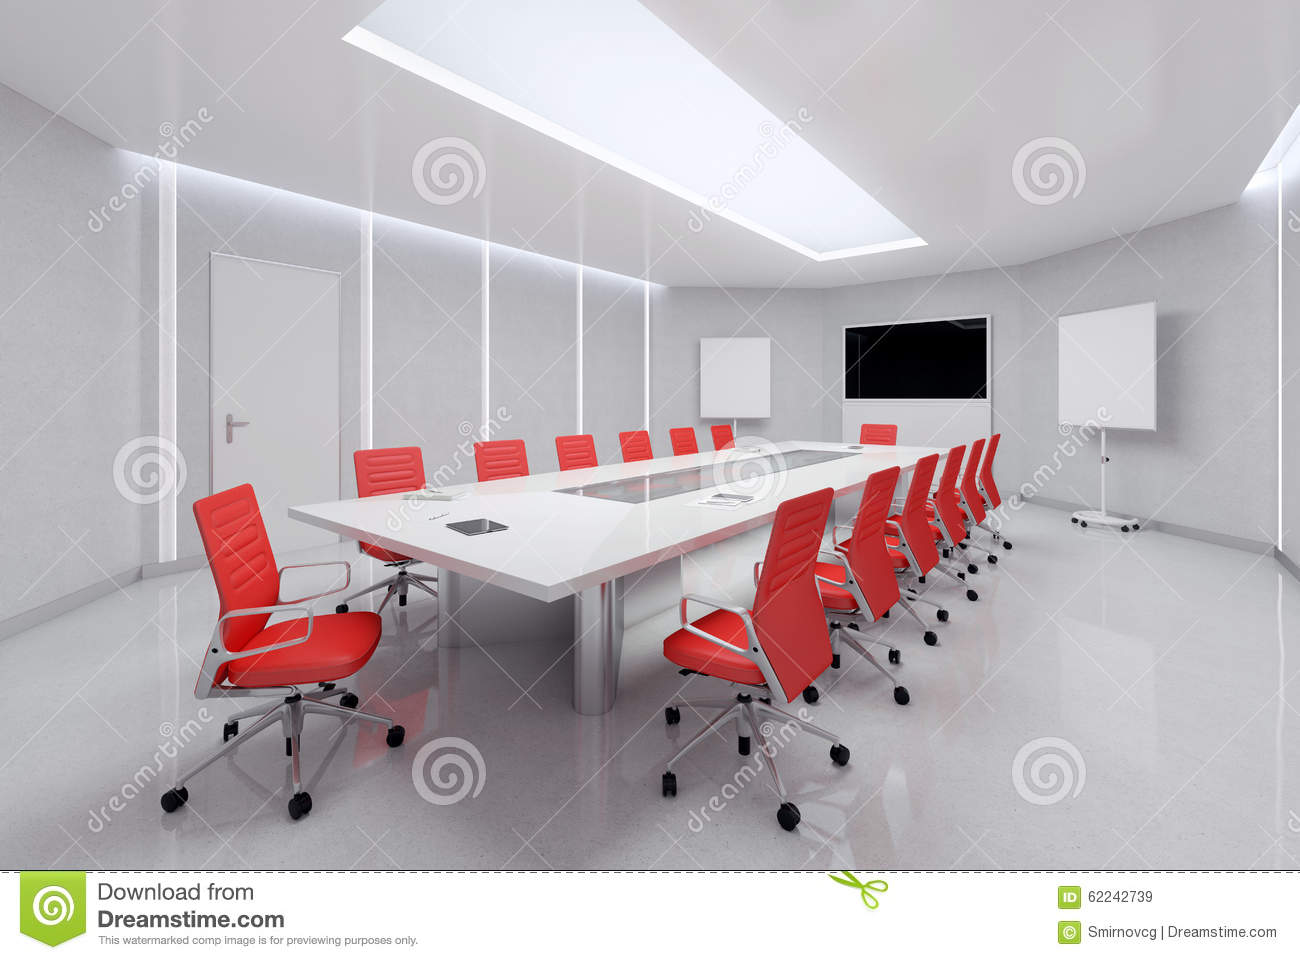 Red conference room chairs - Modern Meeting Room 3d Illustration Royalty Free Stock Images